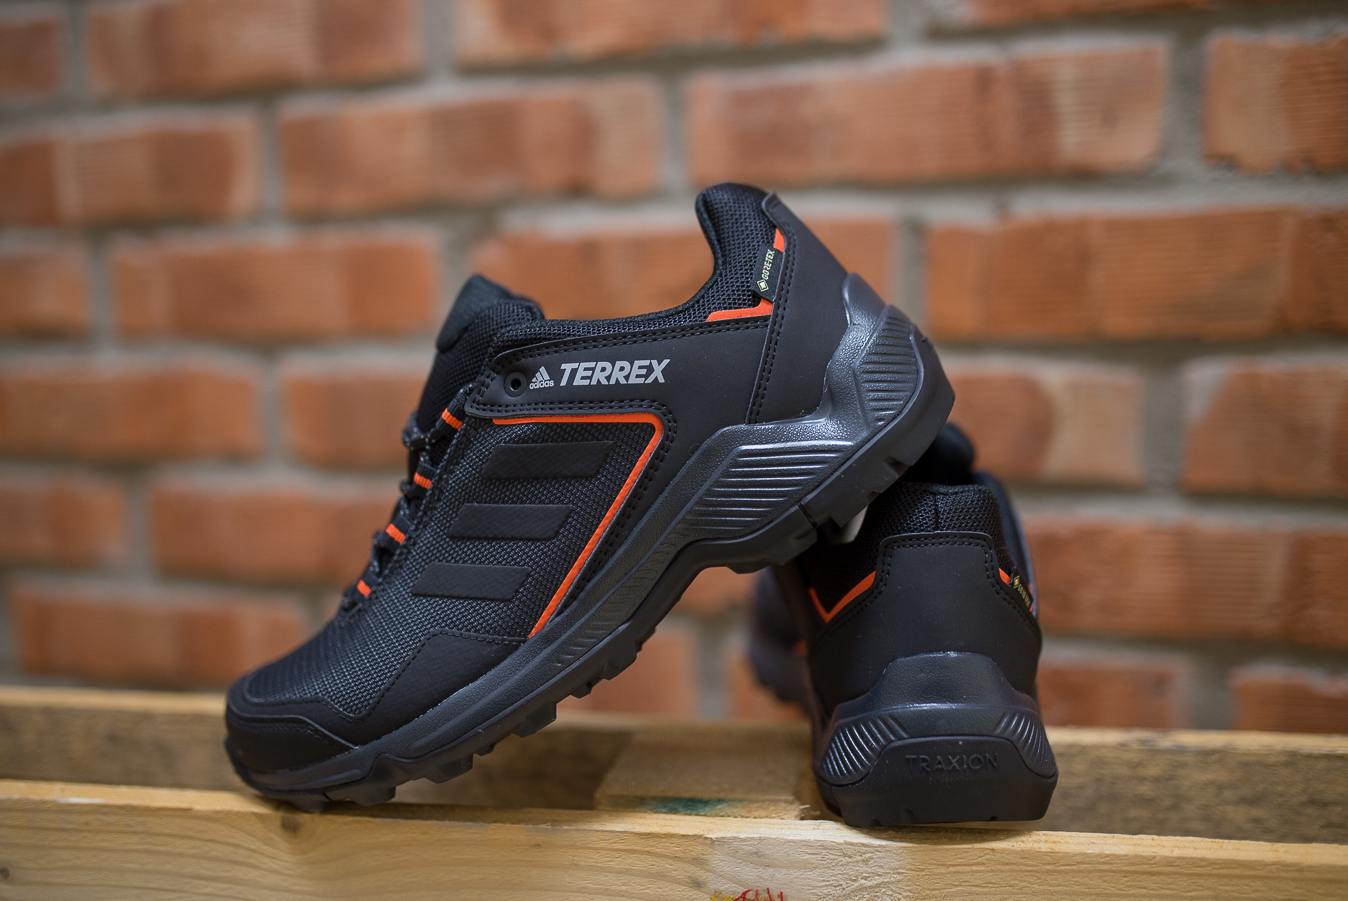 Todo el tiempo comerciante No hagas  ADIDAS TERREX EASTRAIL GTX EF0449 BLACK MEN'S SHOES SNEAKERS TREKKING NEW  2019! | eBay